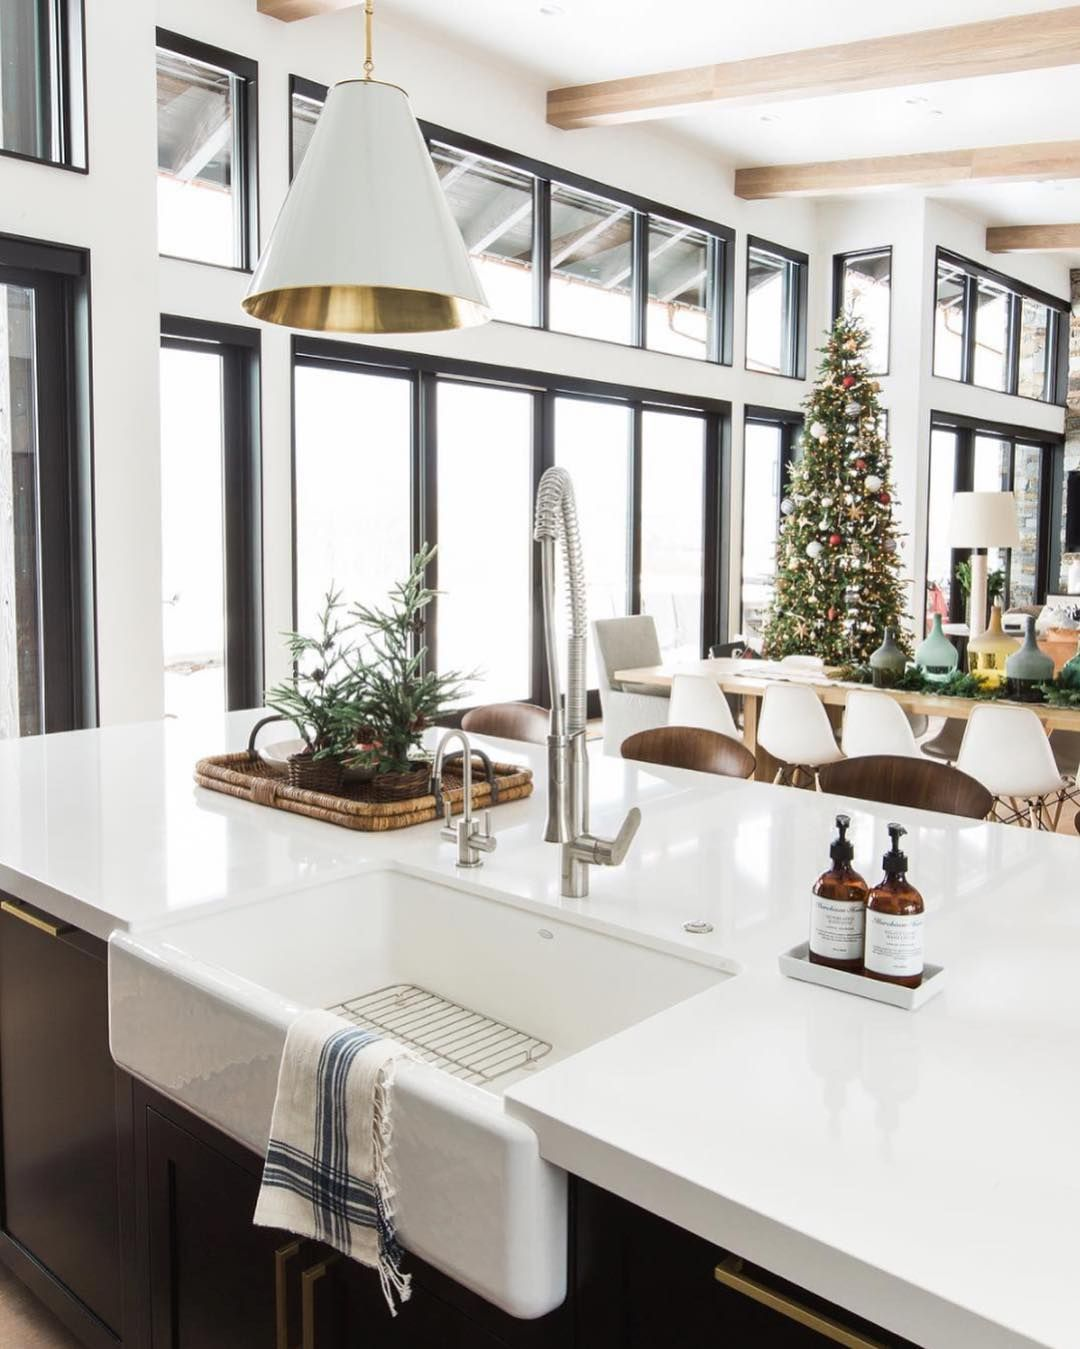 What dreams (kitchens) are made of - explore The New American ...